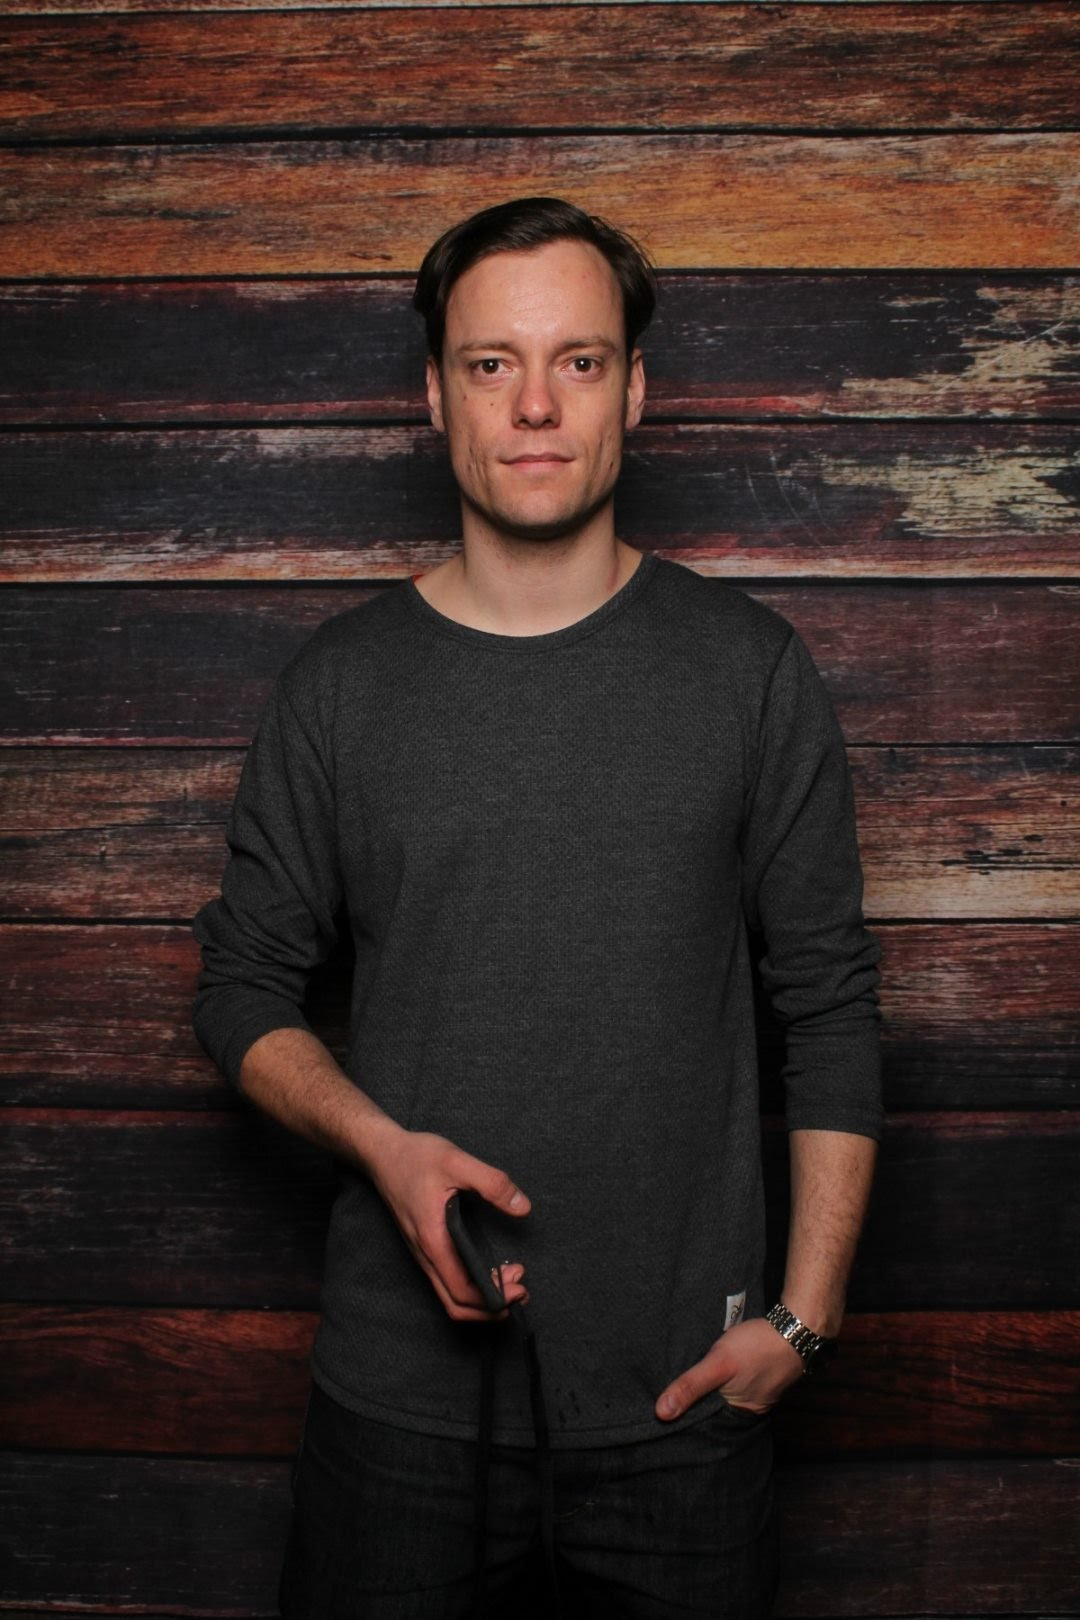 Image shows Martin Kleppe looking straight ahead at the camera. He is standing against a wooden wall